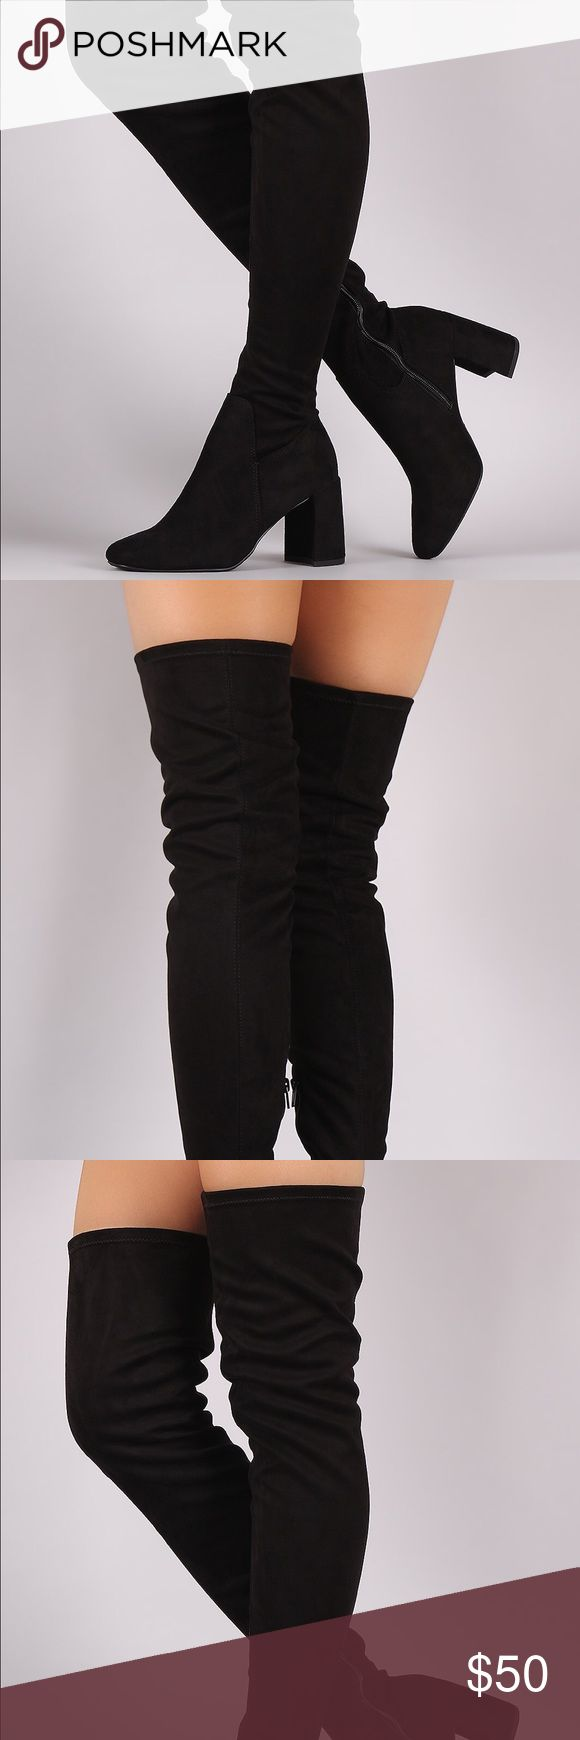 """Thigh high black sock heeled boots 7 NEW IN BOX These stylish boots are over the knee style, featuring a stretchy fitted design. Almond toe. Partial inner side zipper. Finished on acrescent shaped block heel.  Material: Vegan Suede (man-made) Sole: Rubber Measurement Heel Height: 3.25"""" (approx) Shaft Length: 28"""" (including heel) Top Opening Circumference: 16"""" (approx) speed limit 98 Shoes Heeled Boots"""